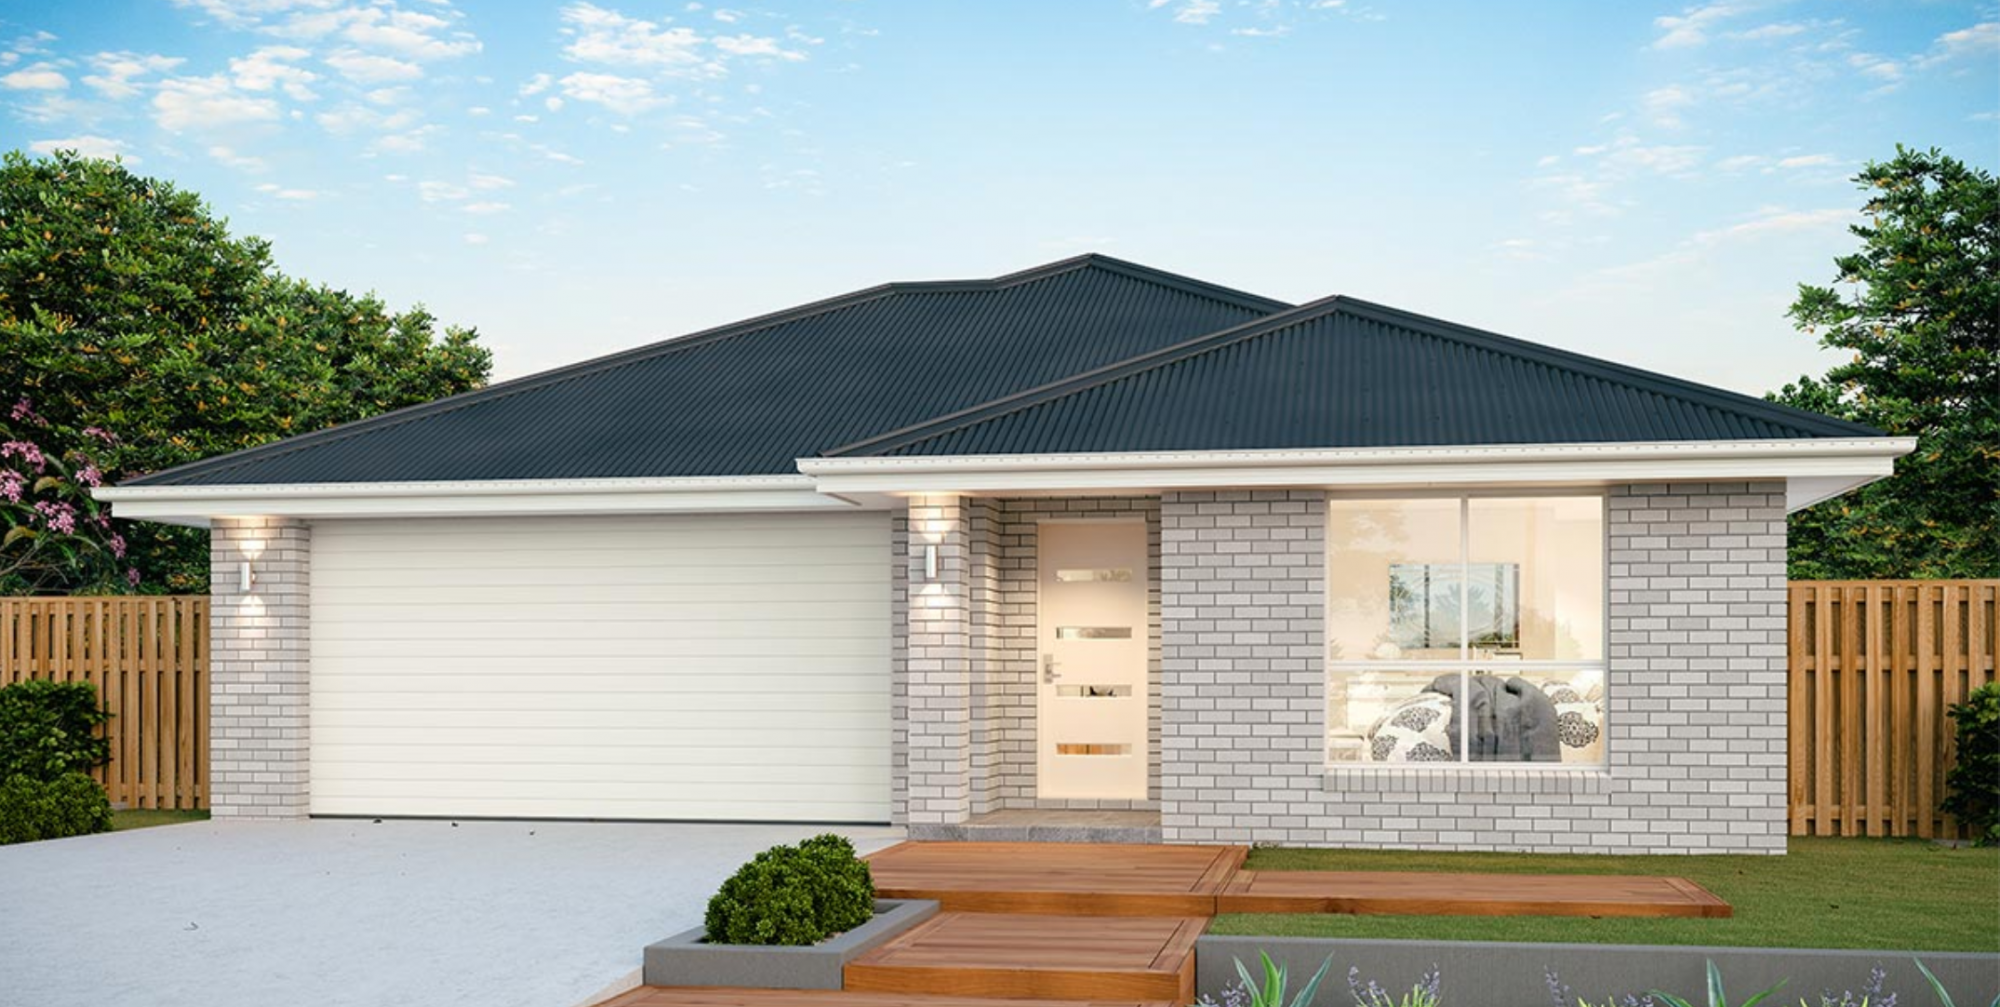 Lot 1032 Proposed Road, Menangle Park, 4 Bedrooms Bedrooms, ,2 BathroomsBathrooms,Villa,For Sale,Lot 1032 Proposed Road,1003